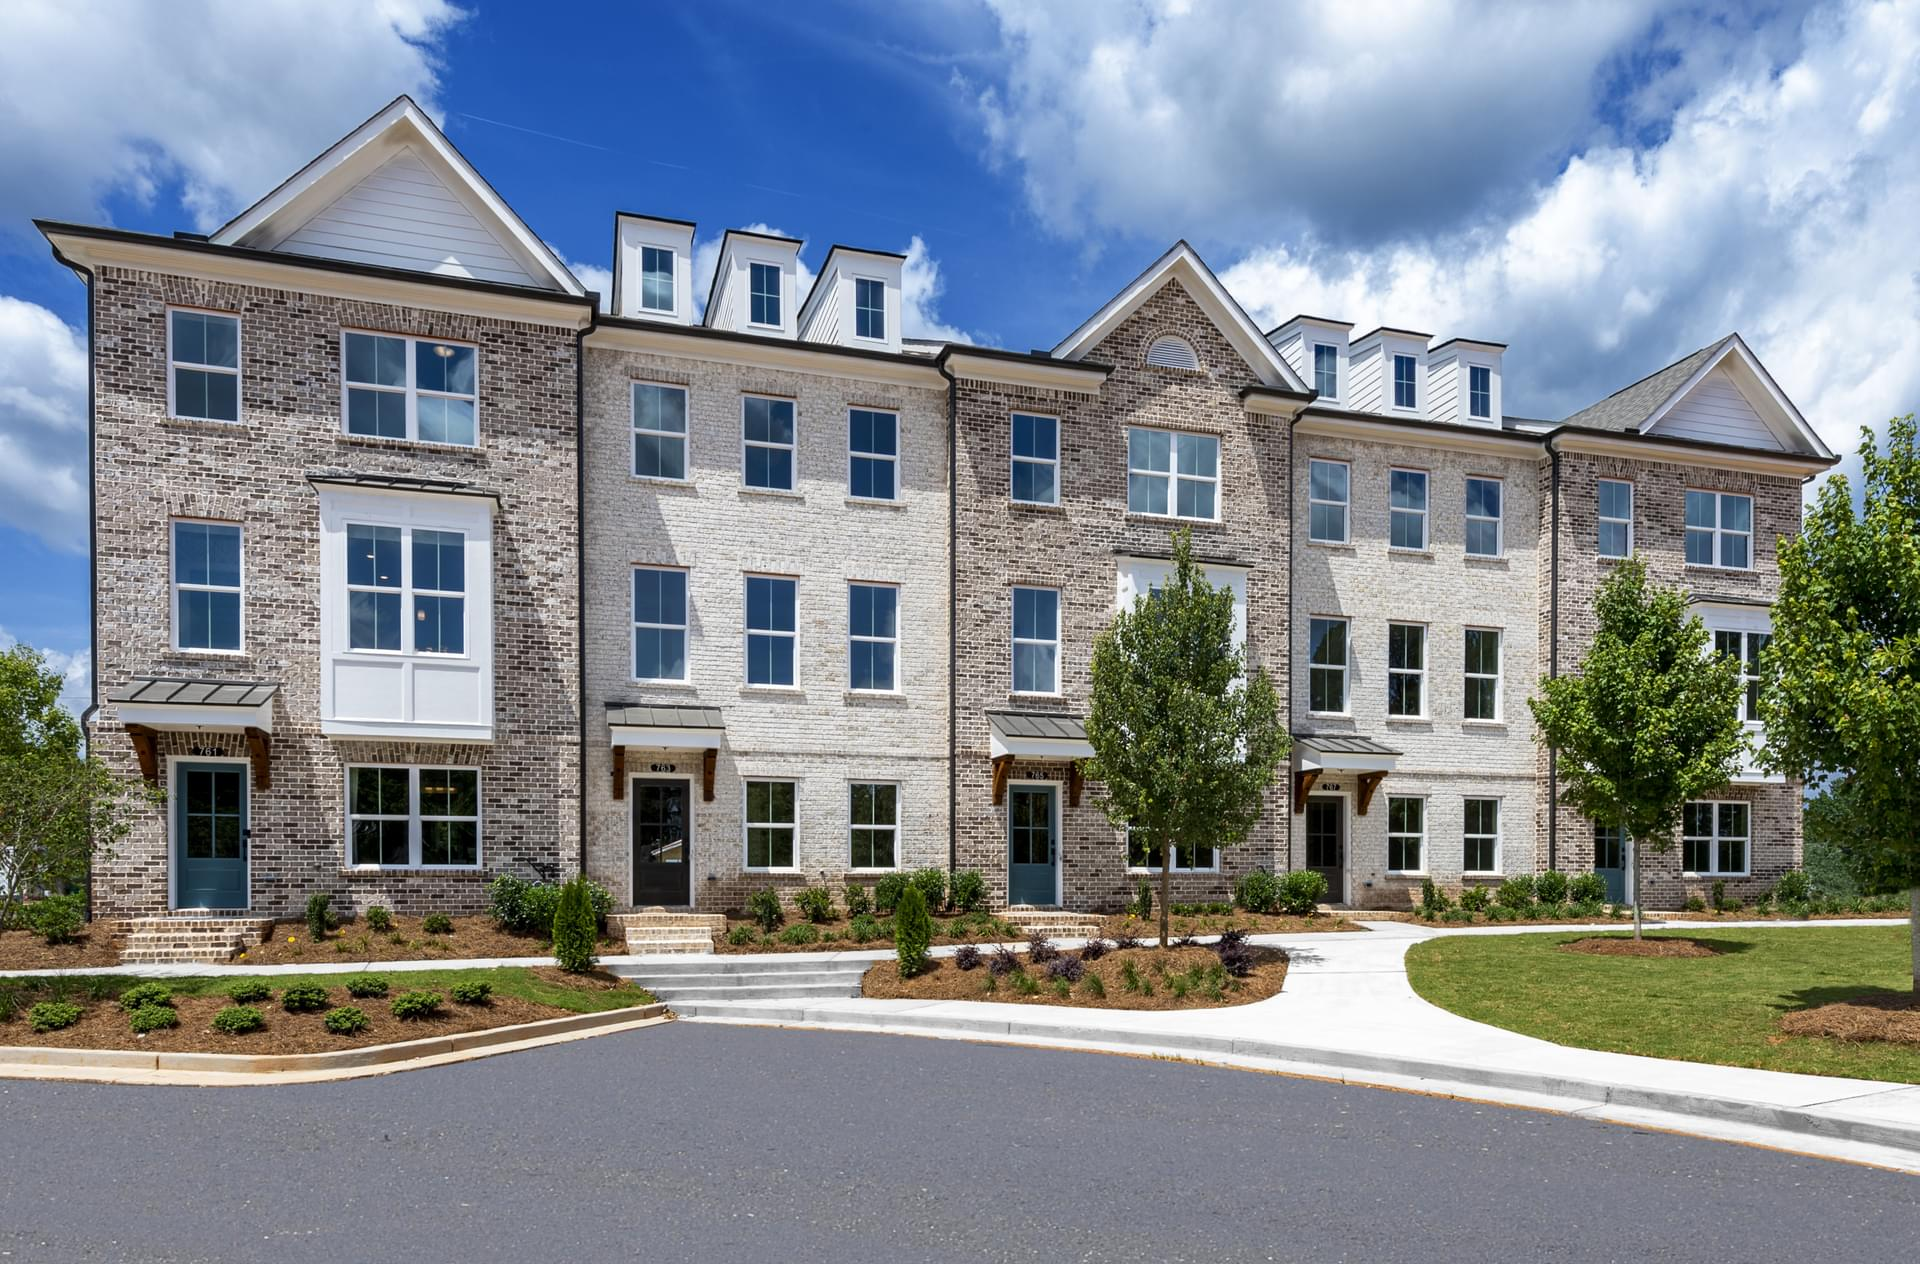 Glendale Rowes New Homes in Clarkston GA